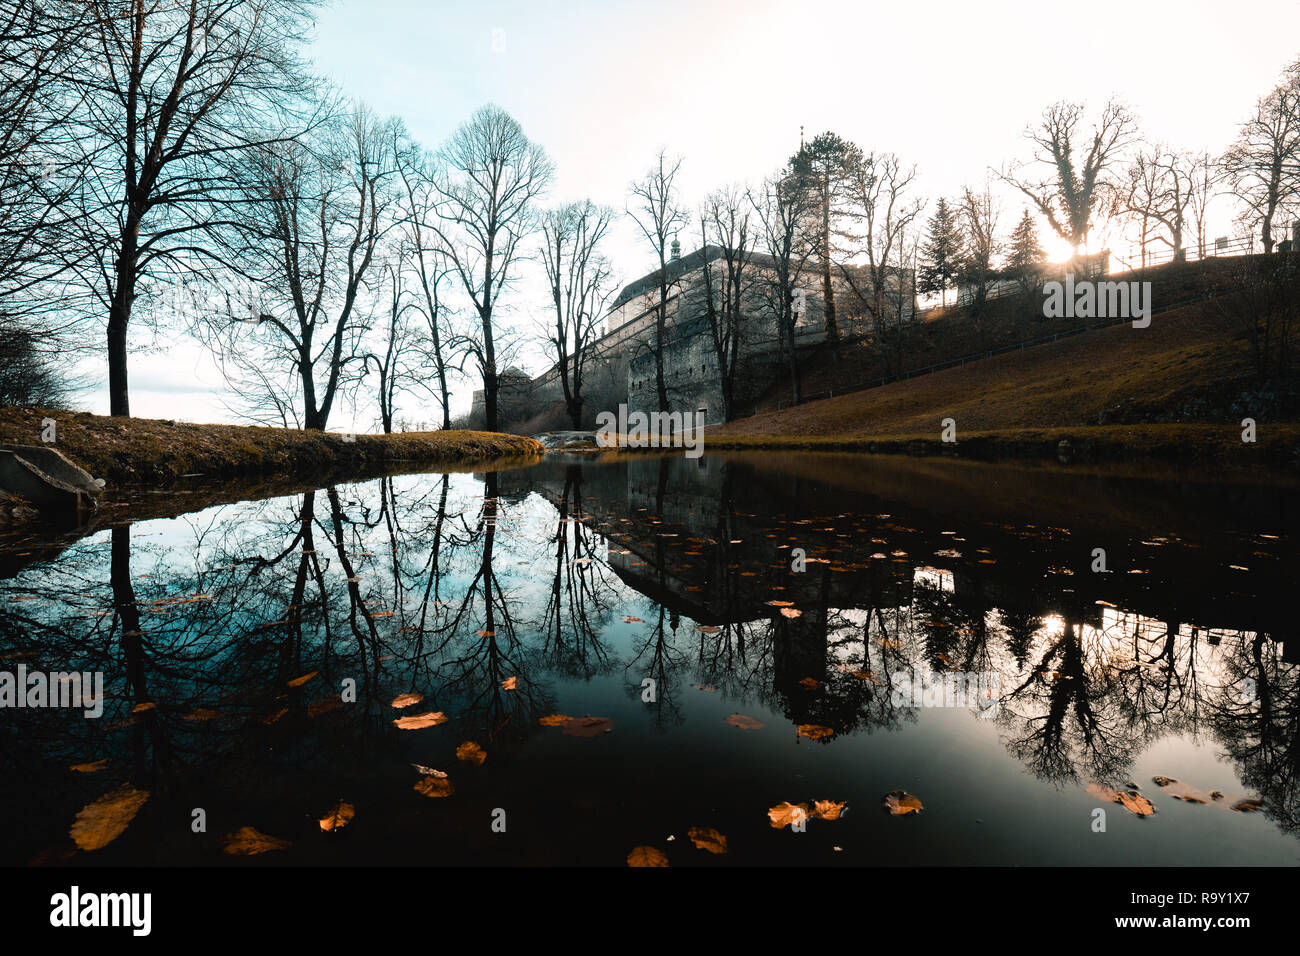 sunrise impression of Castle Forchtenstein (Burgenland, Austria) during winter in a reflecting lake - Stock Image